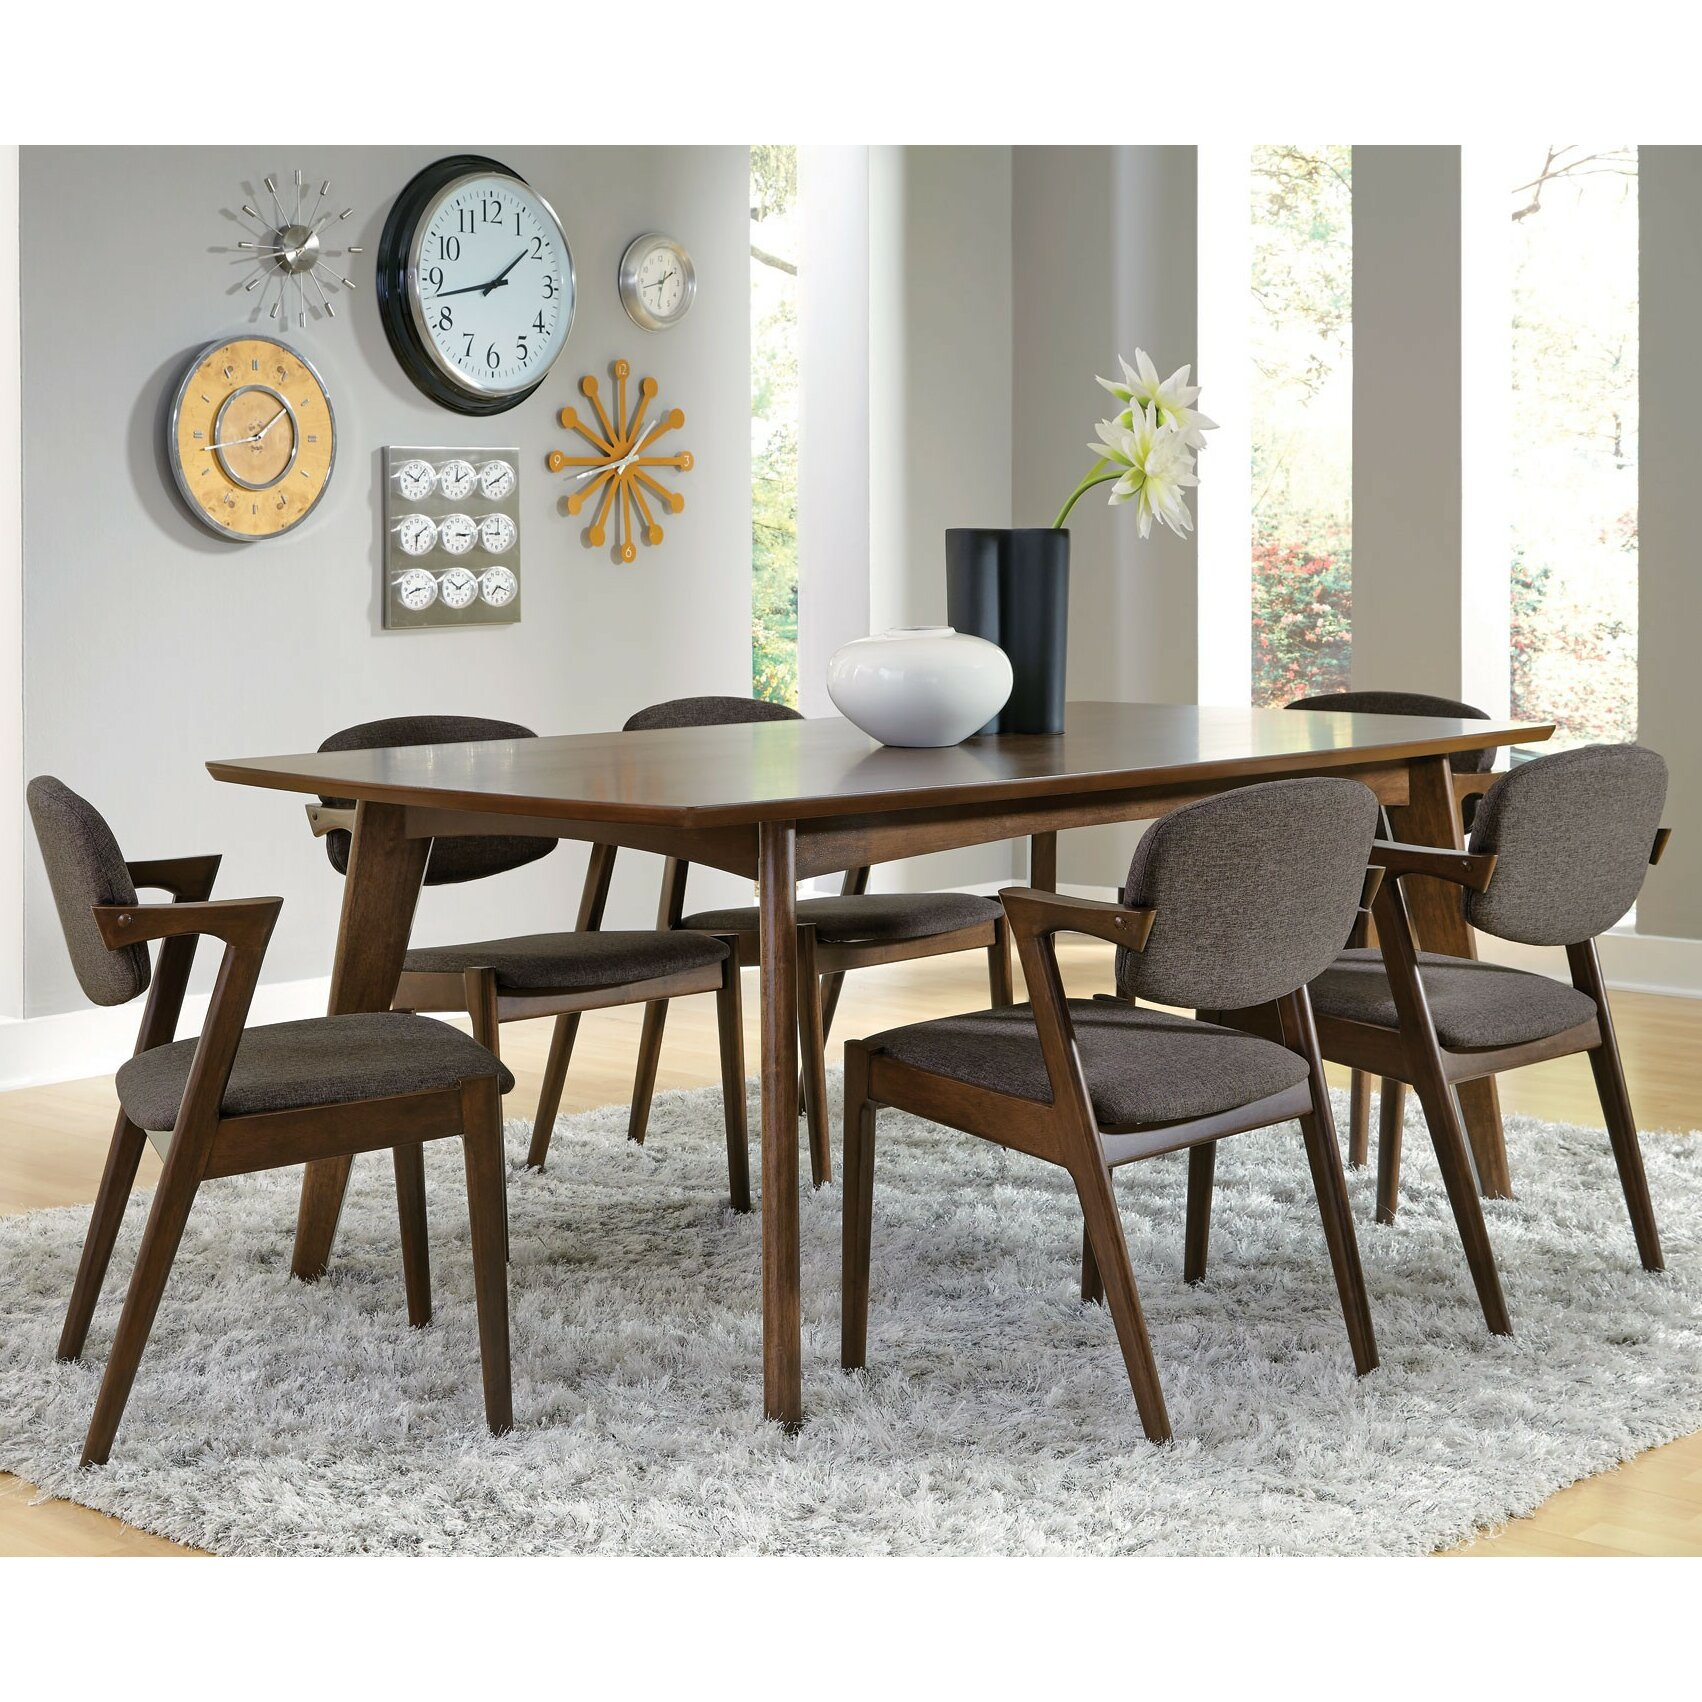 Infini furnishings frederik 7 piece dining set reviews for 7 piece dining set